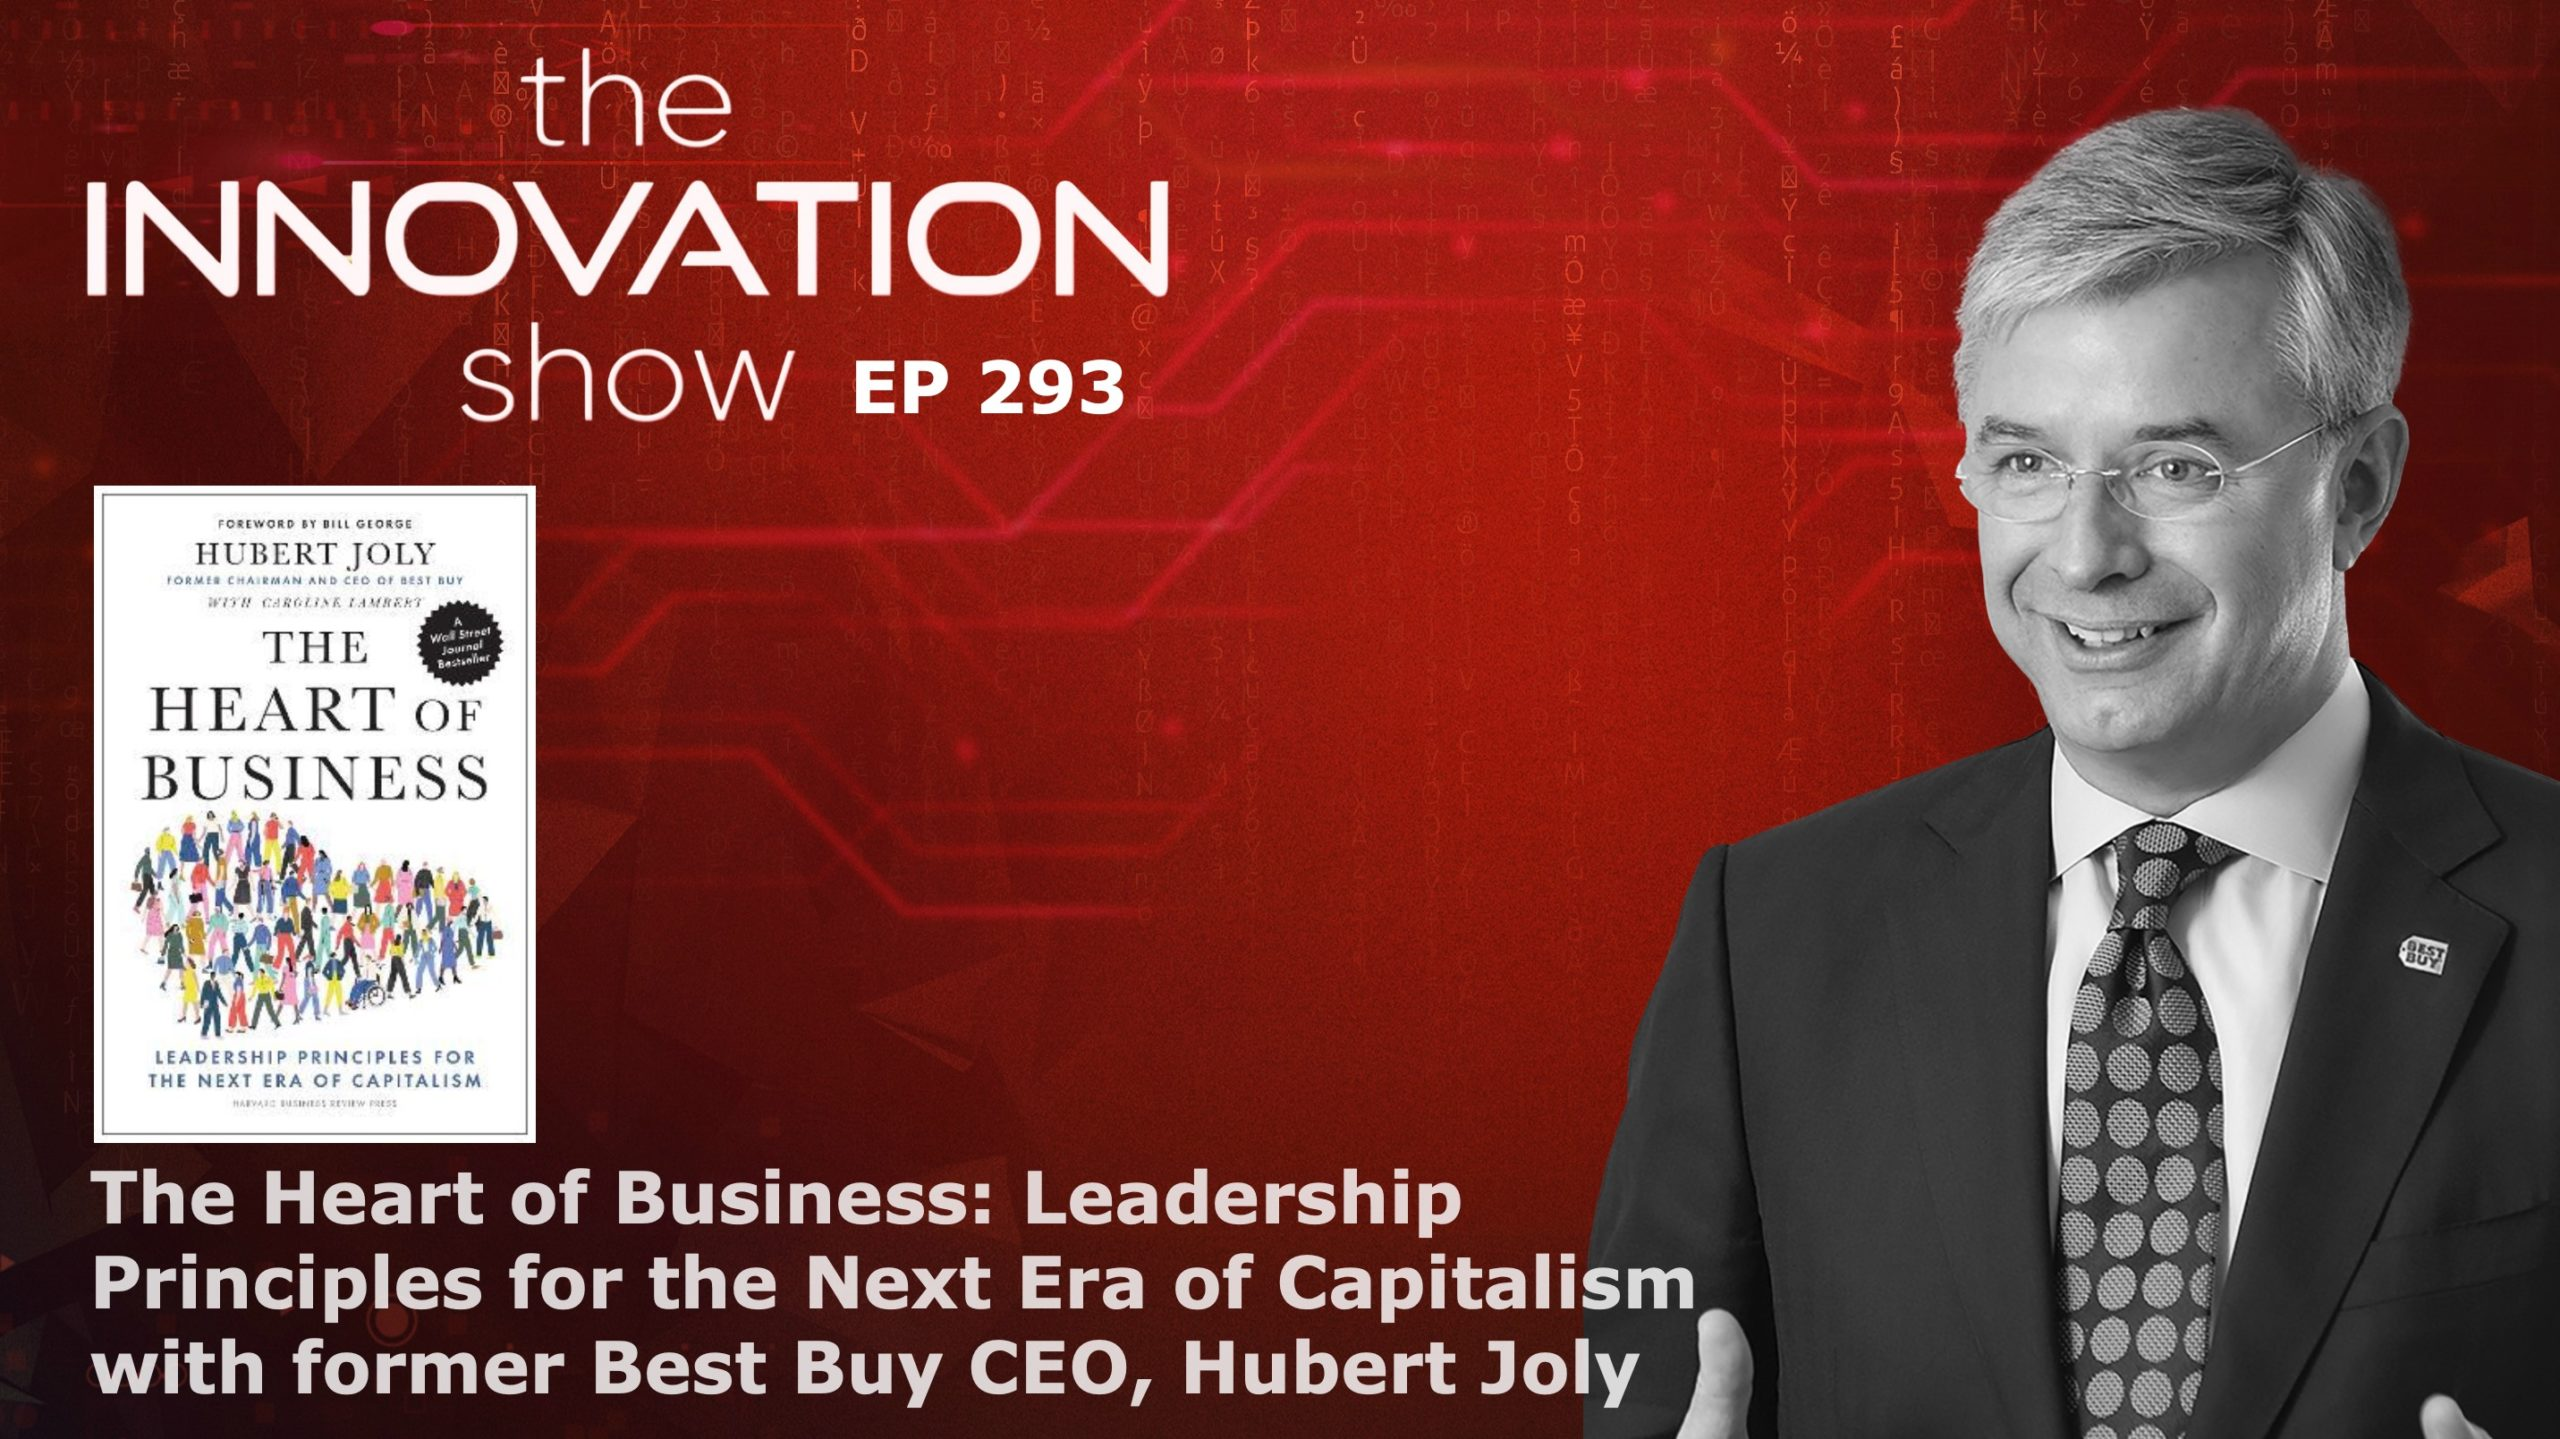 Image of Hubert Joly on the Innovation Show